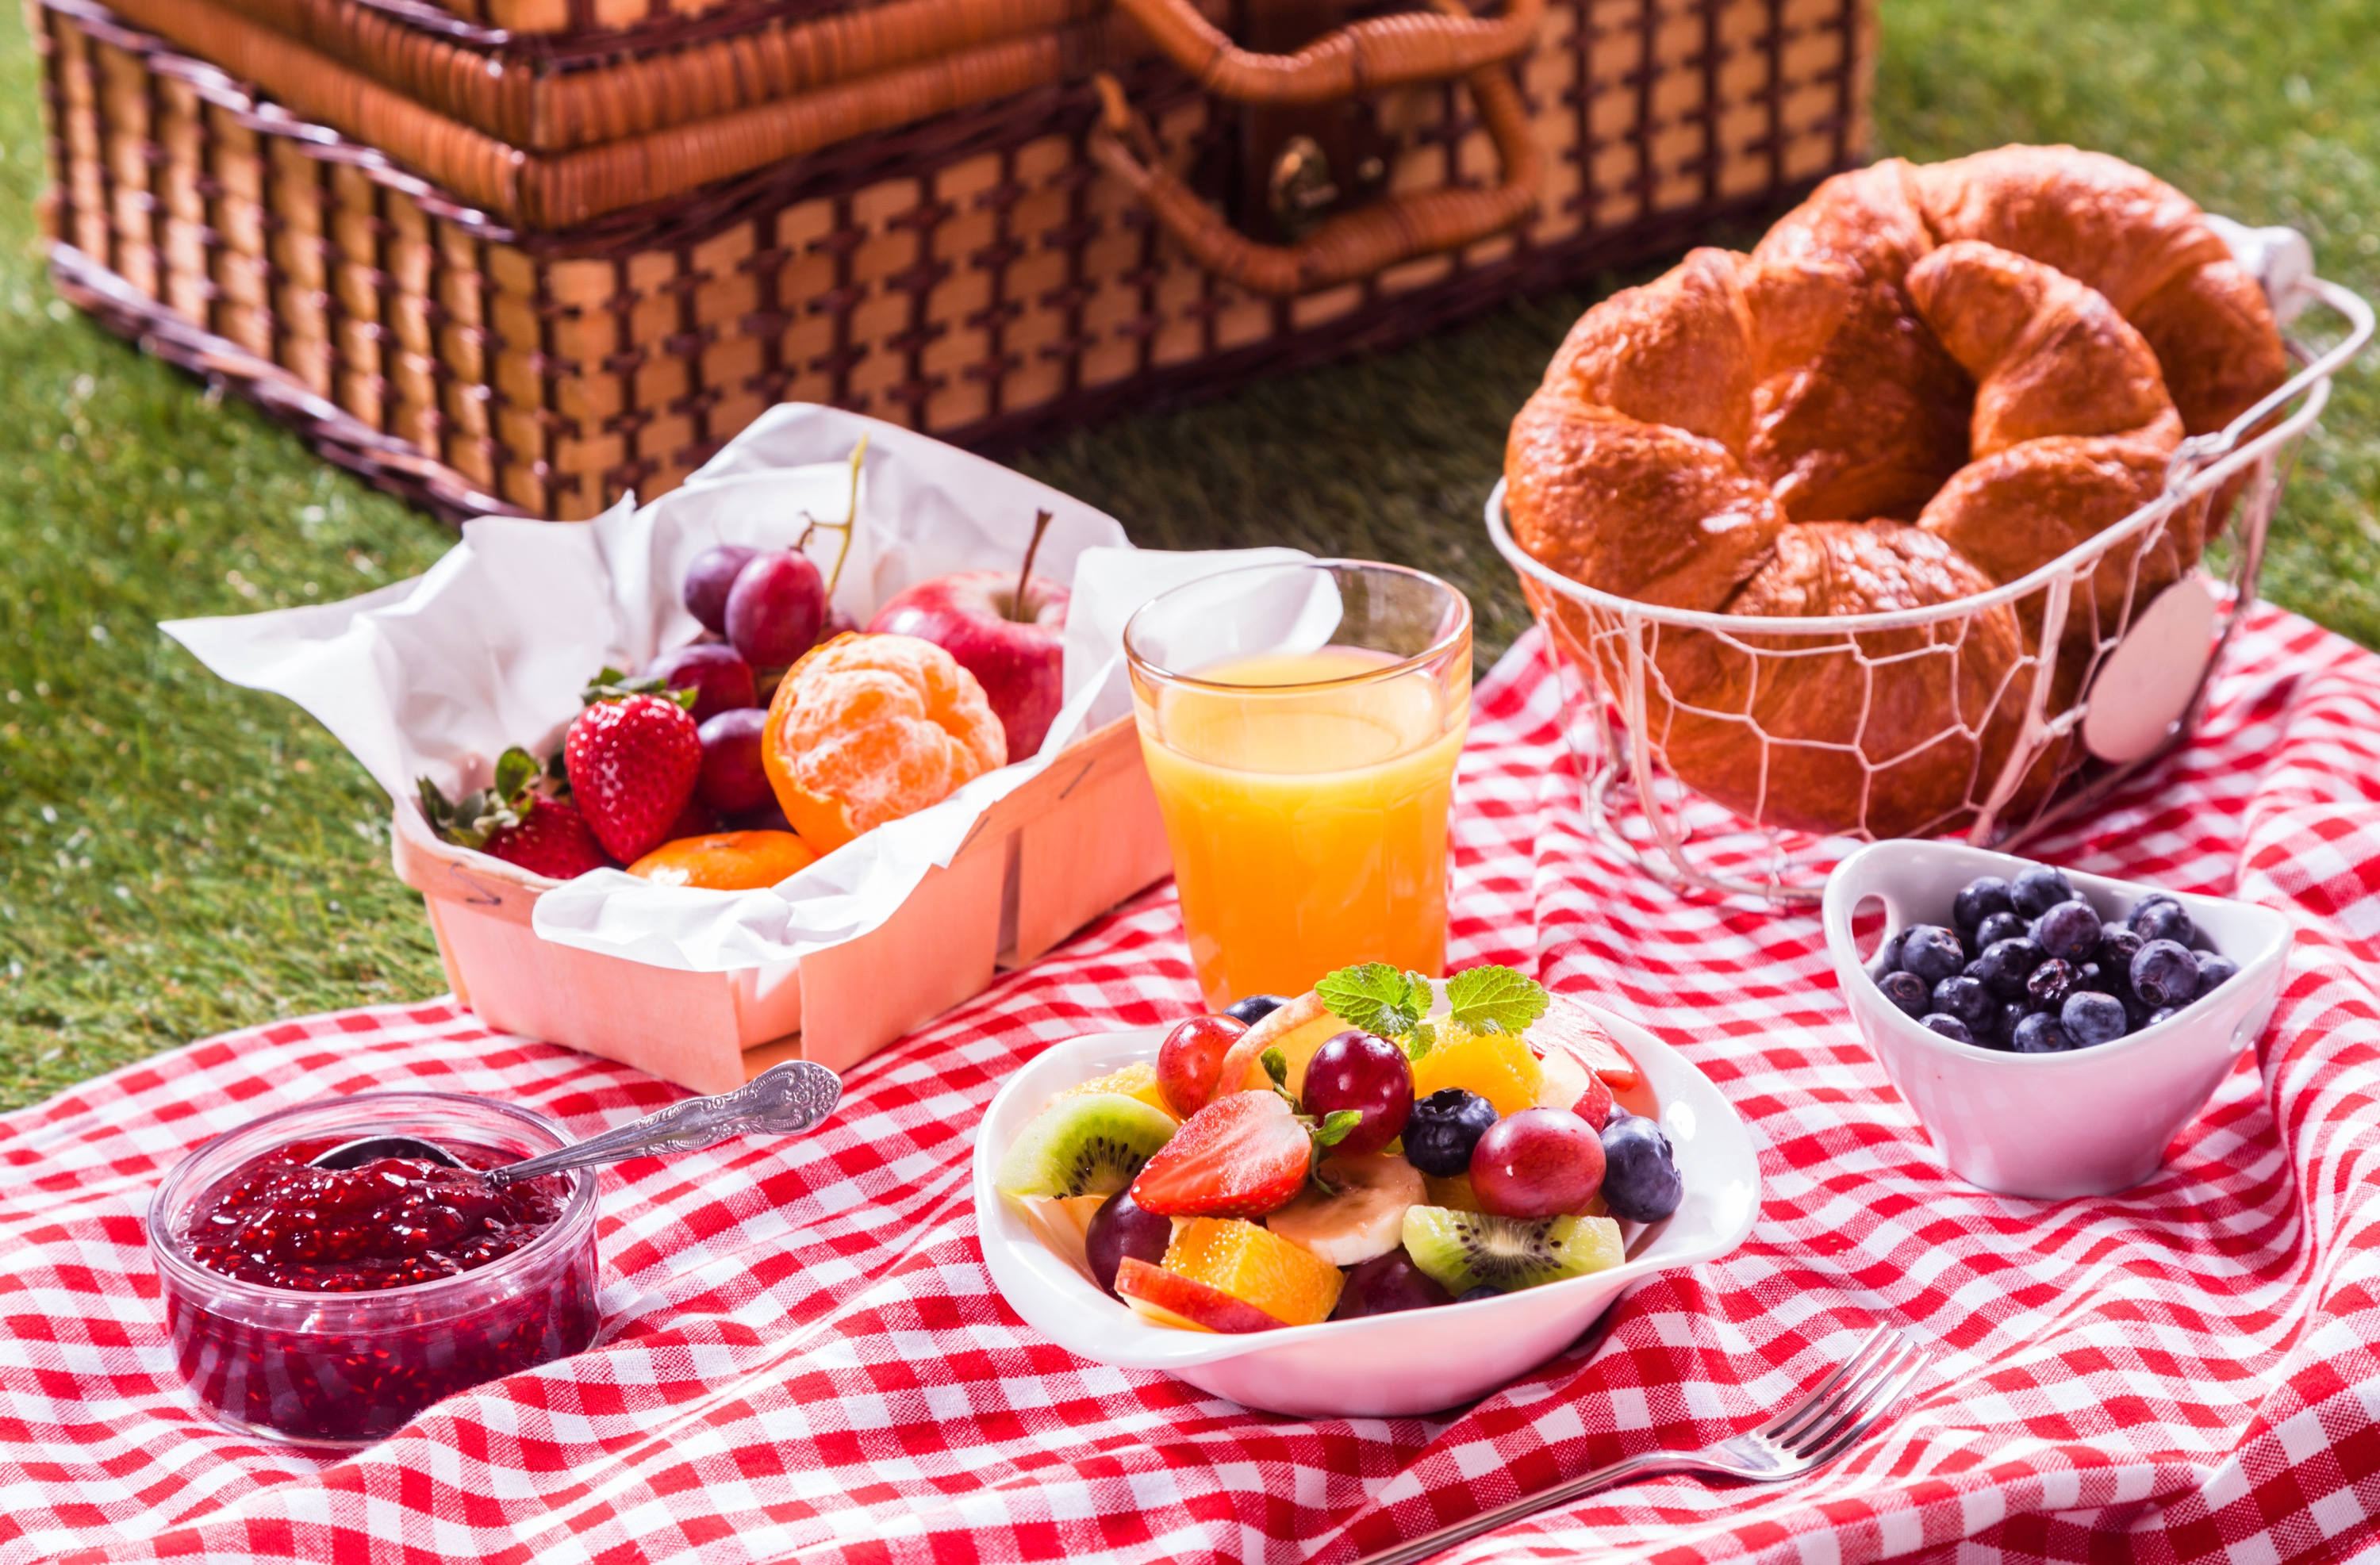 Pictures Of Old Fashioned Picnic Baskets